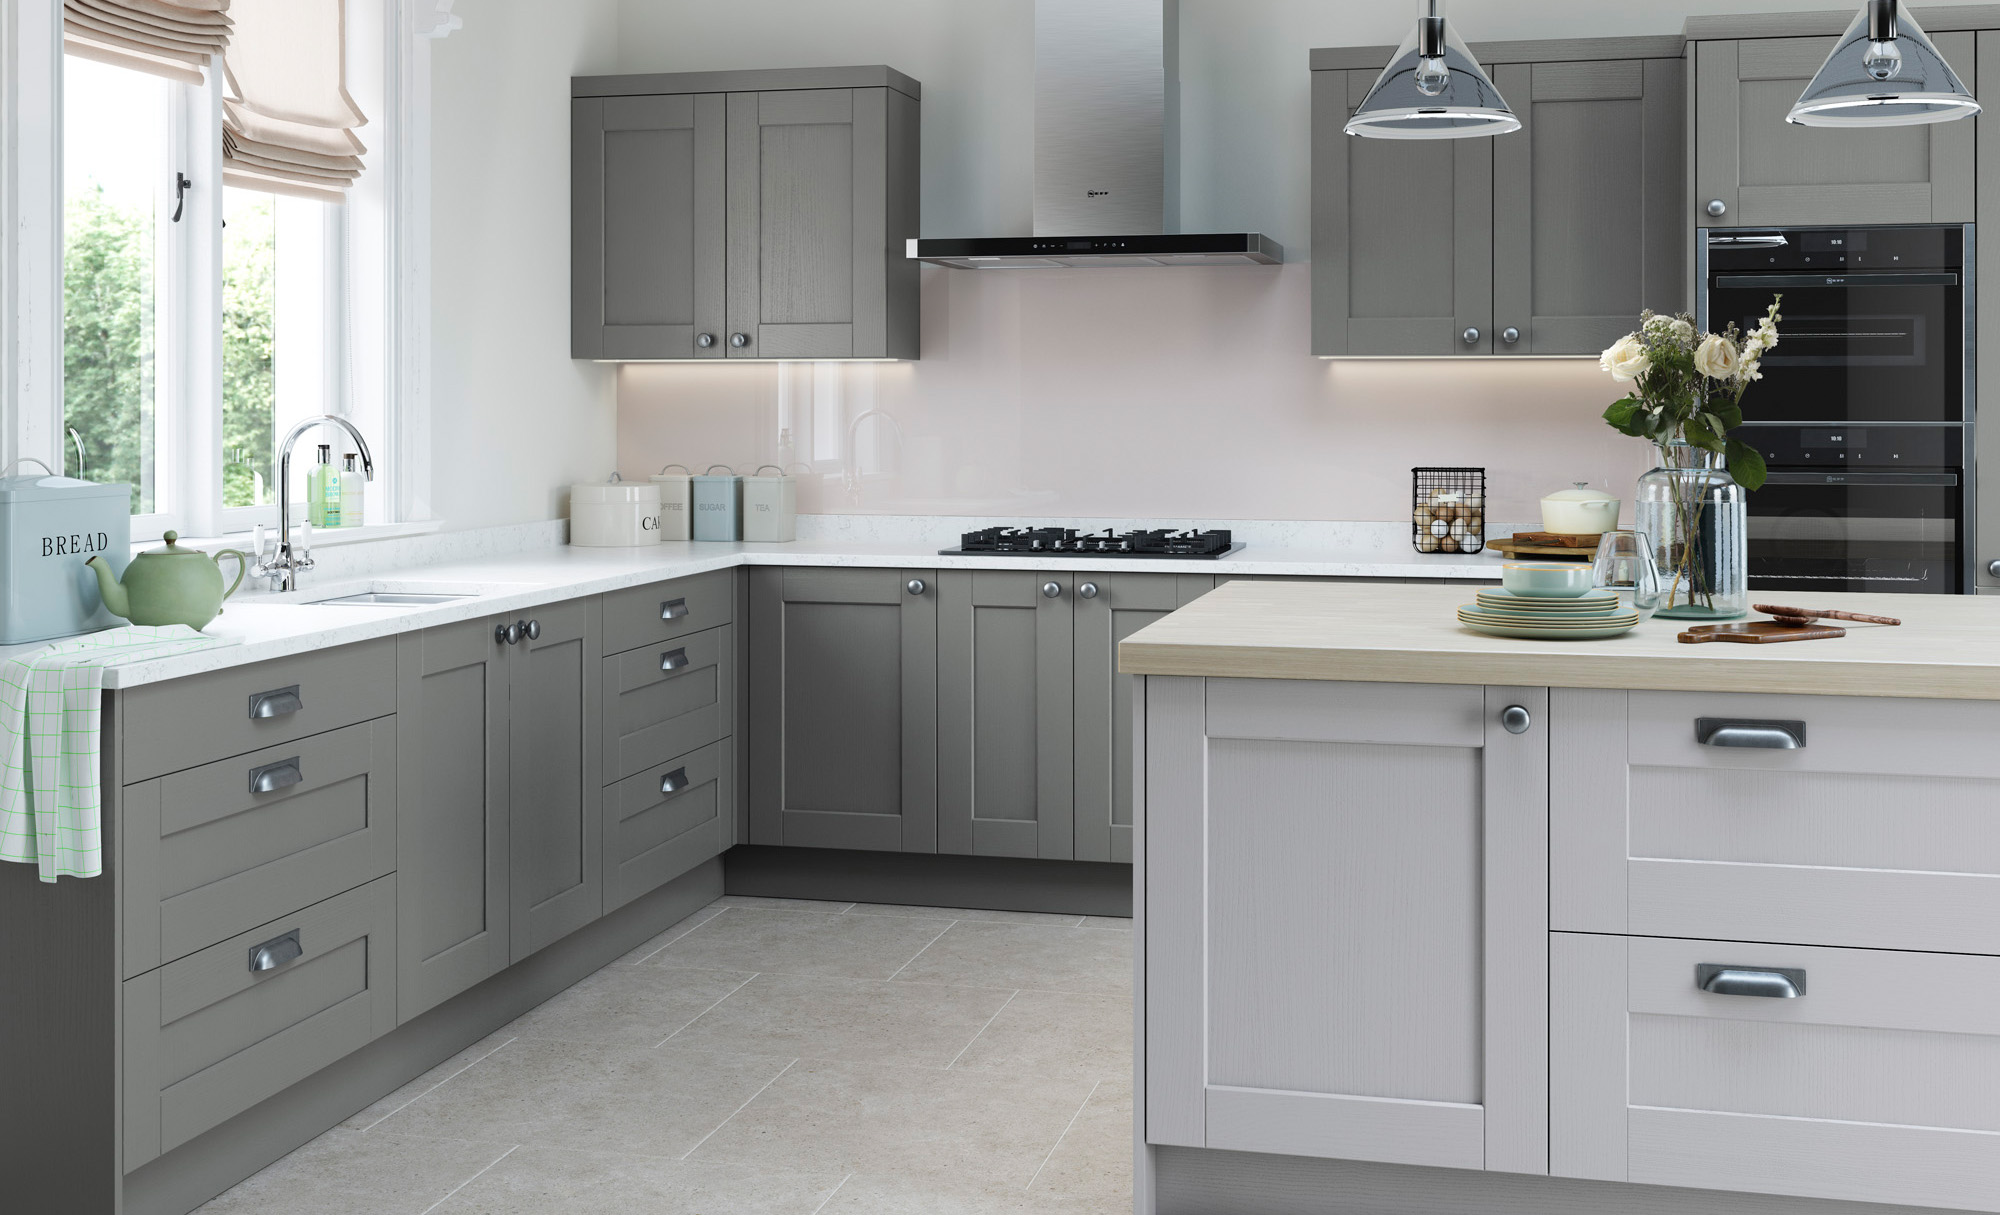 Shaker kitchen doors kensington classic uform for Kitchen ideas light grey